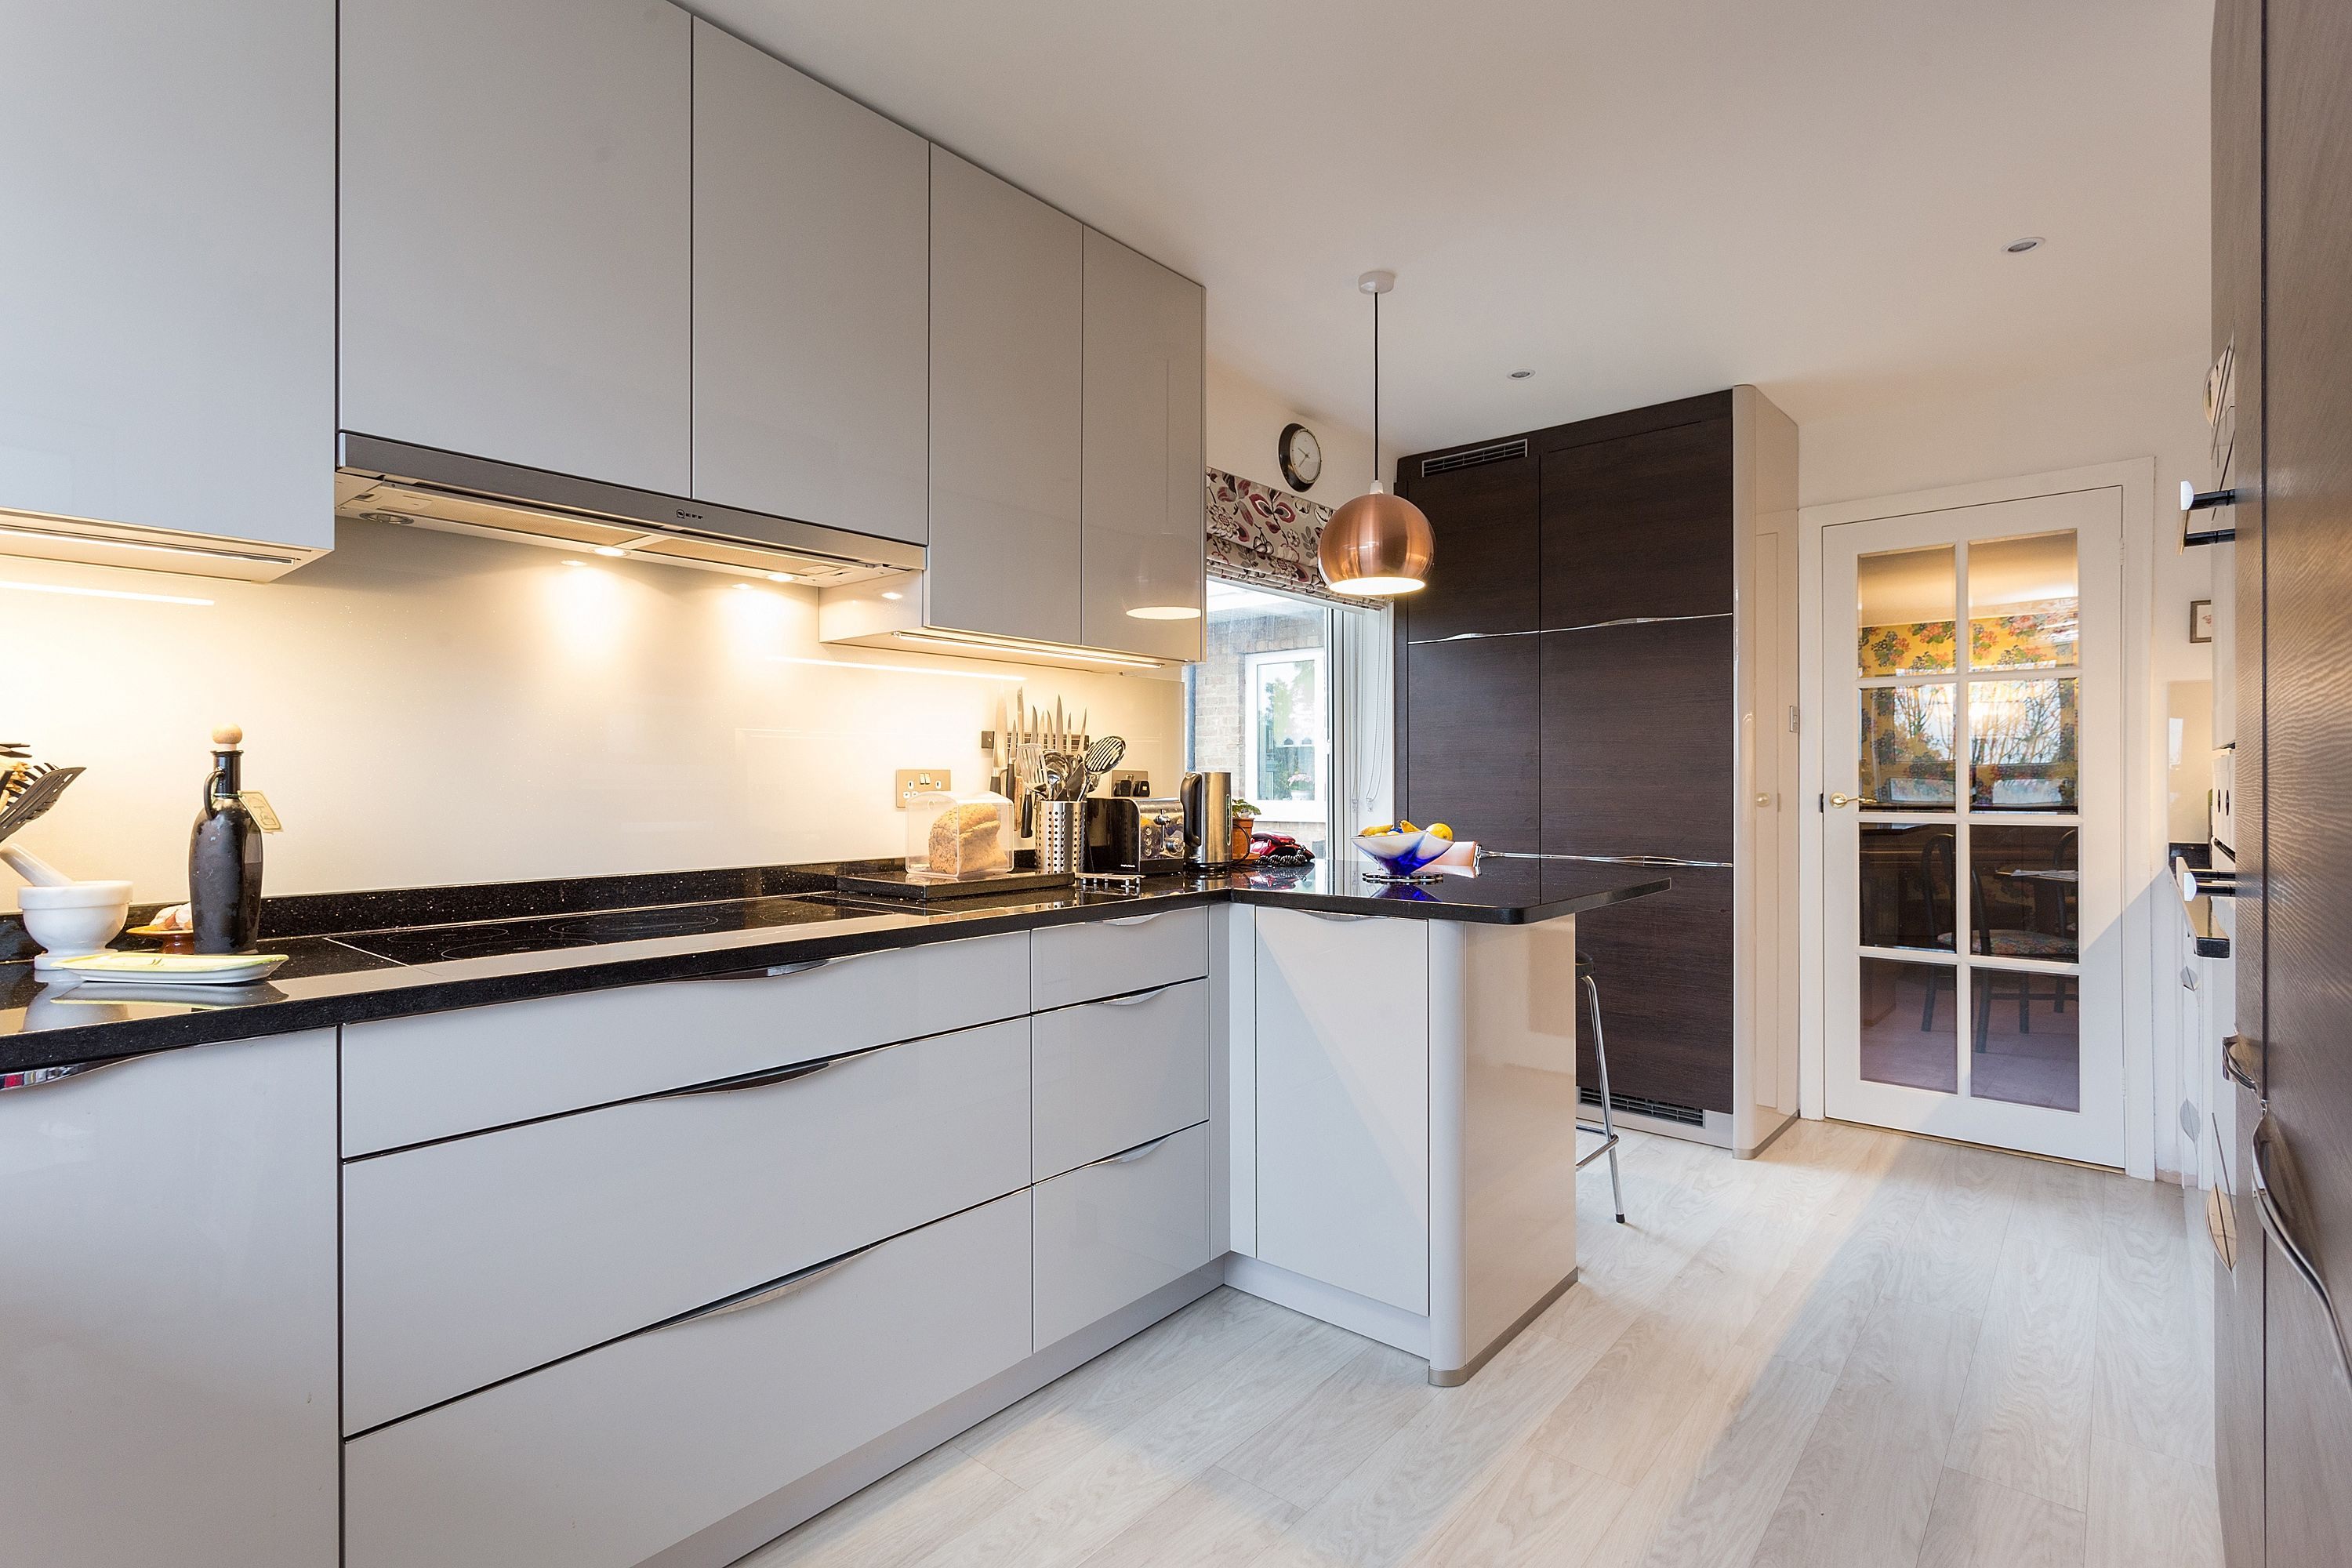 Nolte Küche Manhattan Sahara Modern Nolte Manhatten Kitchen In Wenge Gloss Sahara Units With